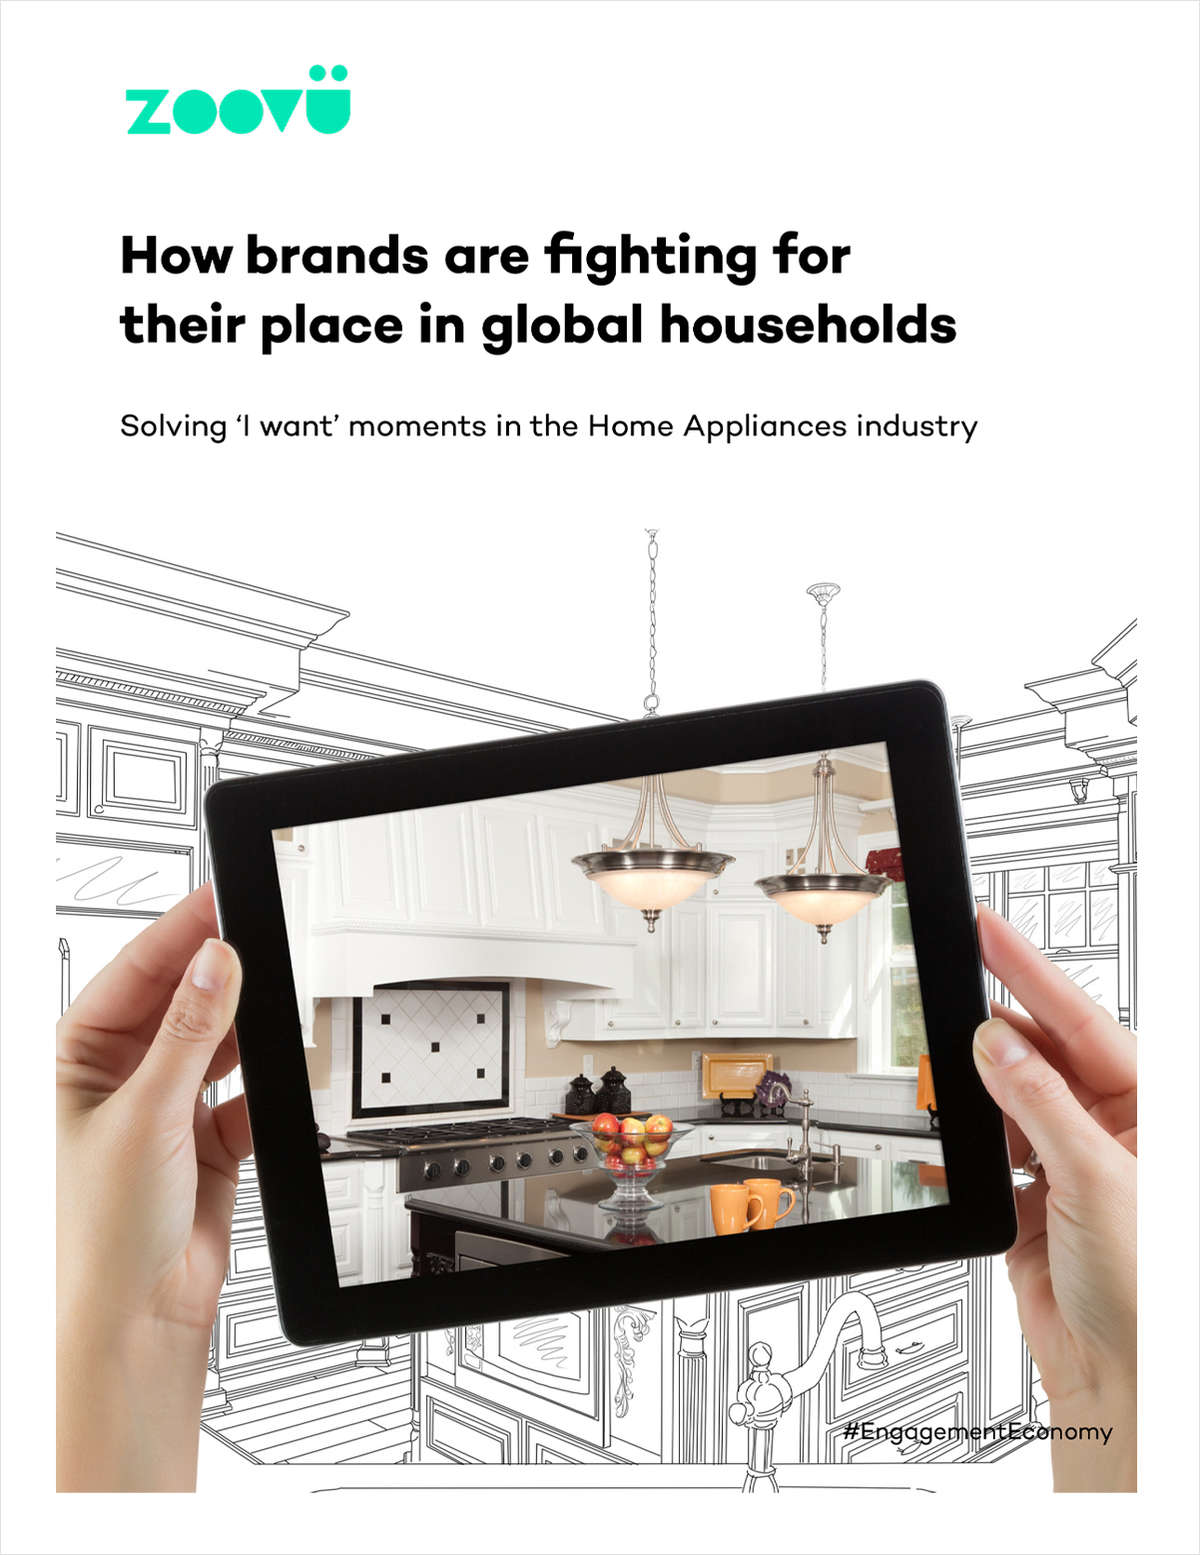 How Brands Are Fighting For Their Place In Global Households